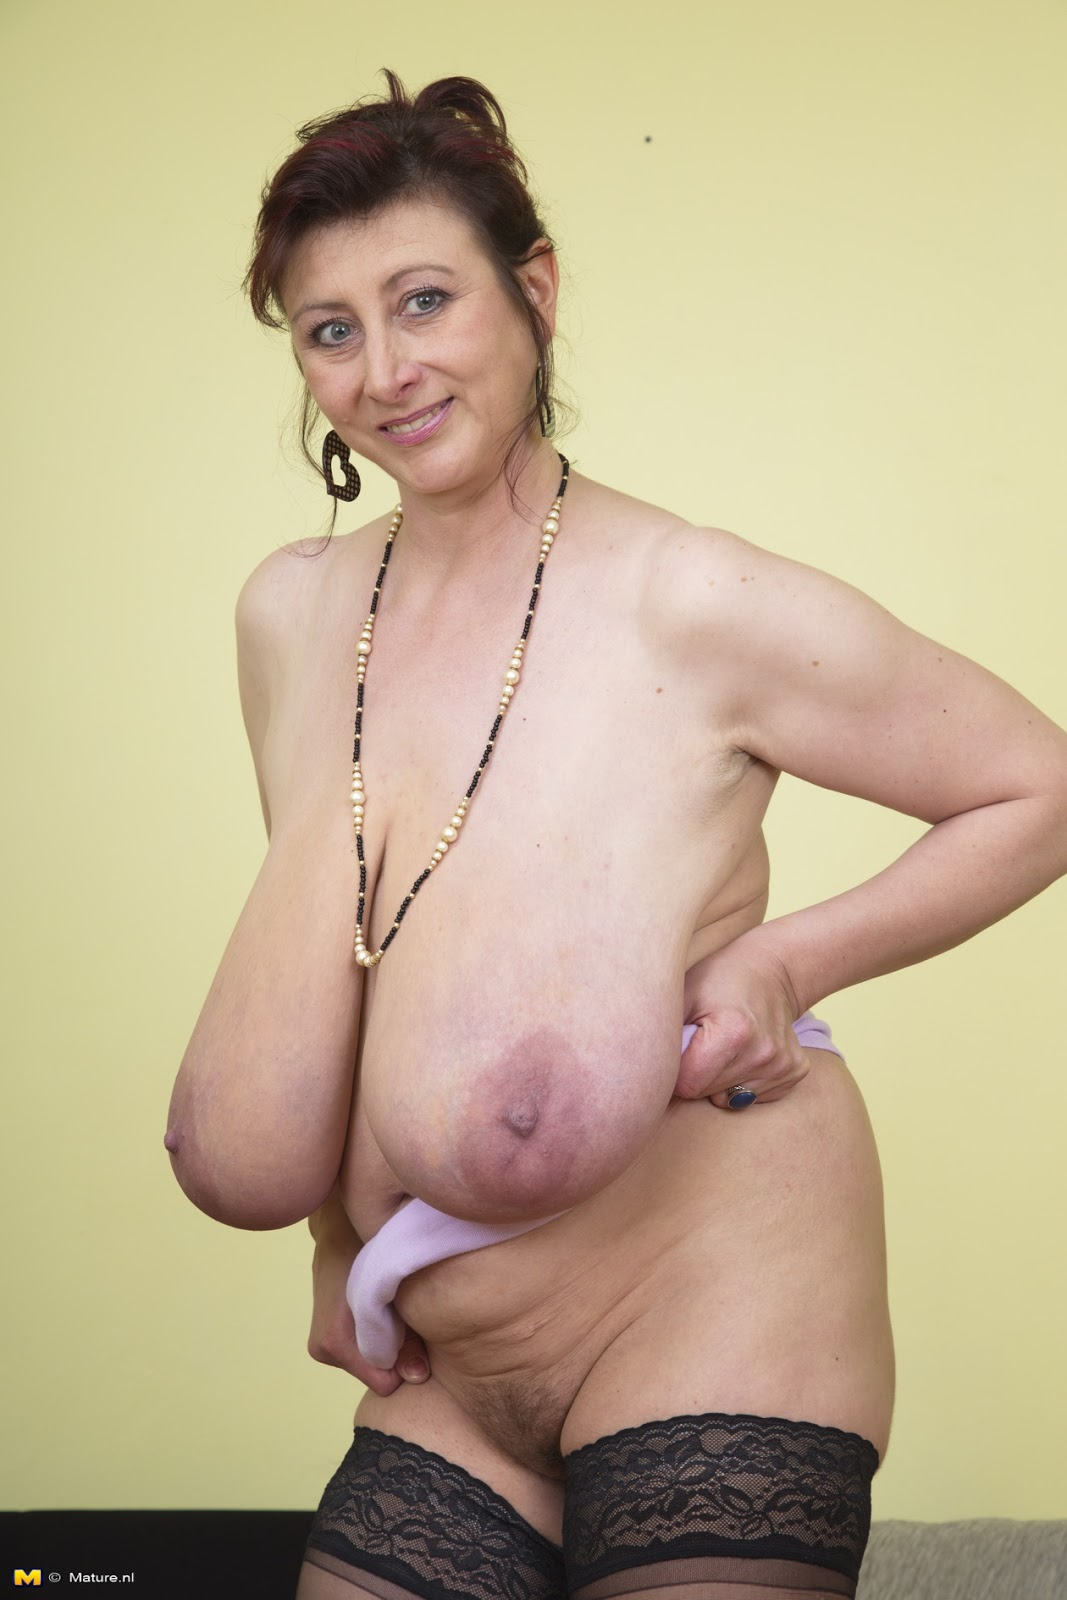 Archiveoffoldwomenblogspotcom Huge Mature Boobs Of Jana P-1413